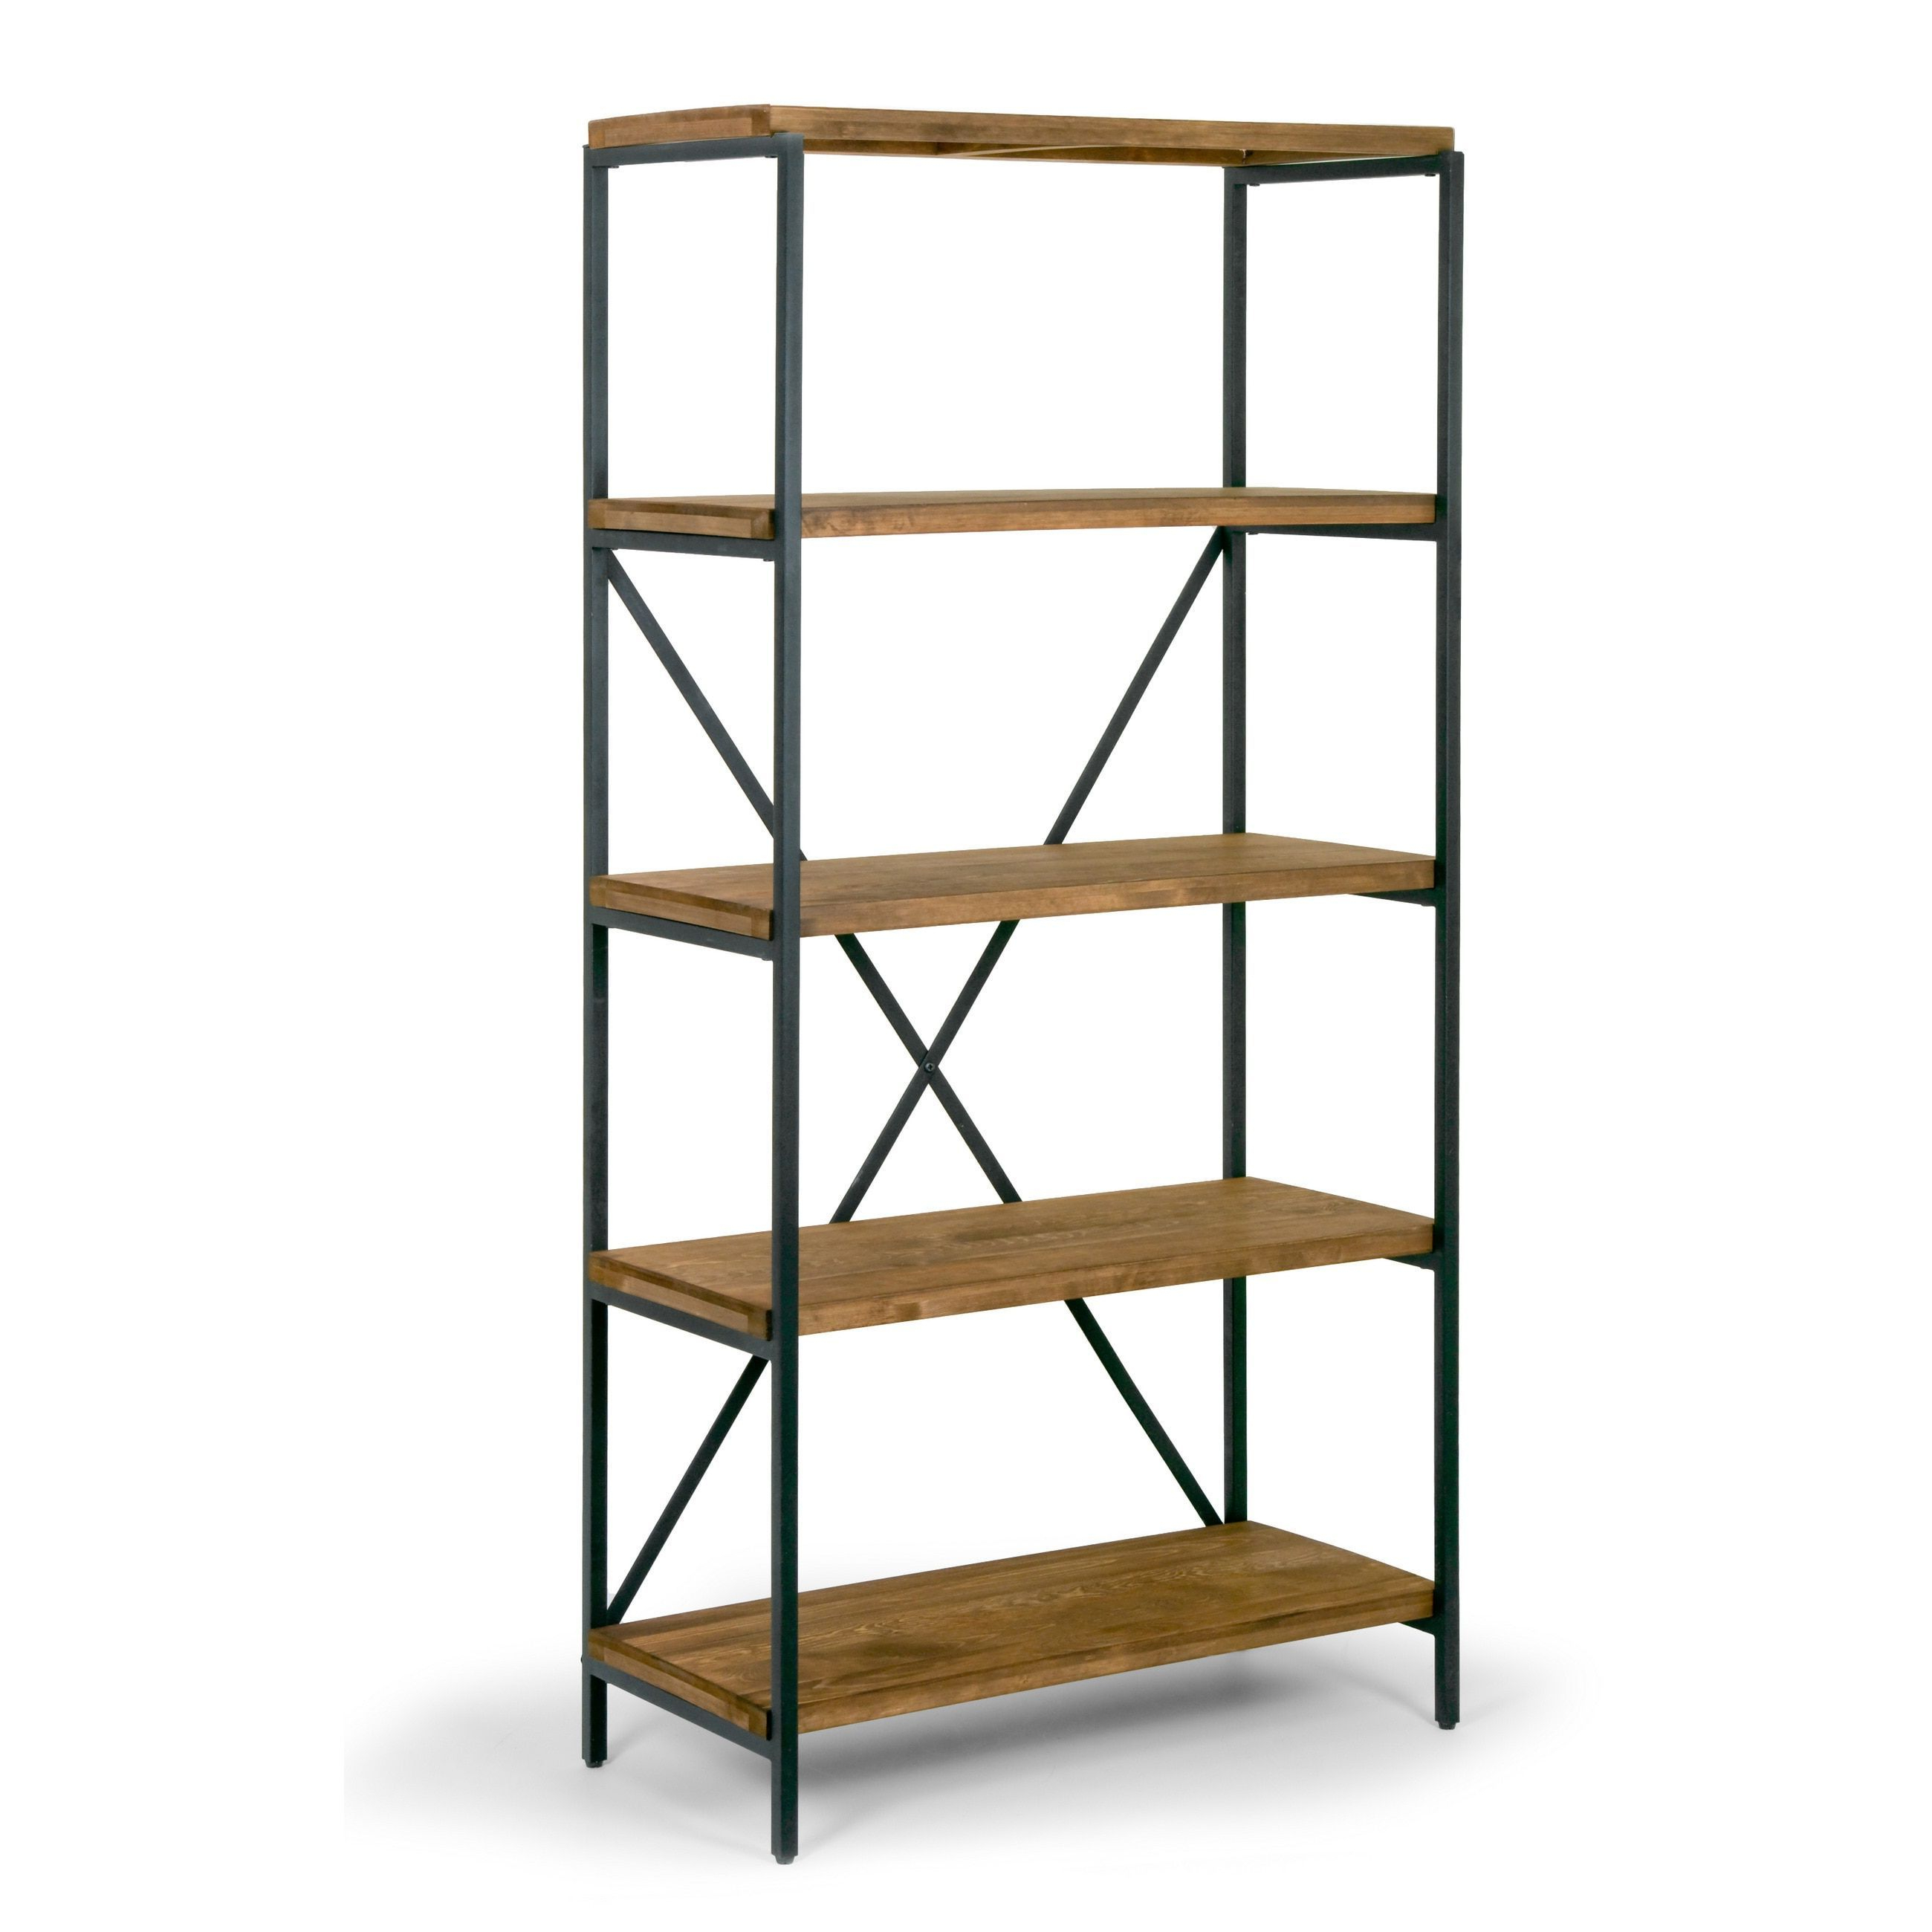 "Preferred Ailis 67"" Brown Pine Wood Shelf Etagere Bookcase Media With Rossman Etagere Bookcases (Gallery 3 of 20)"